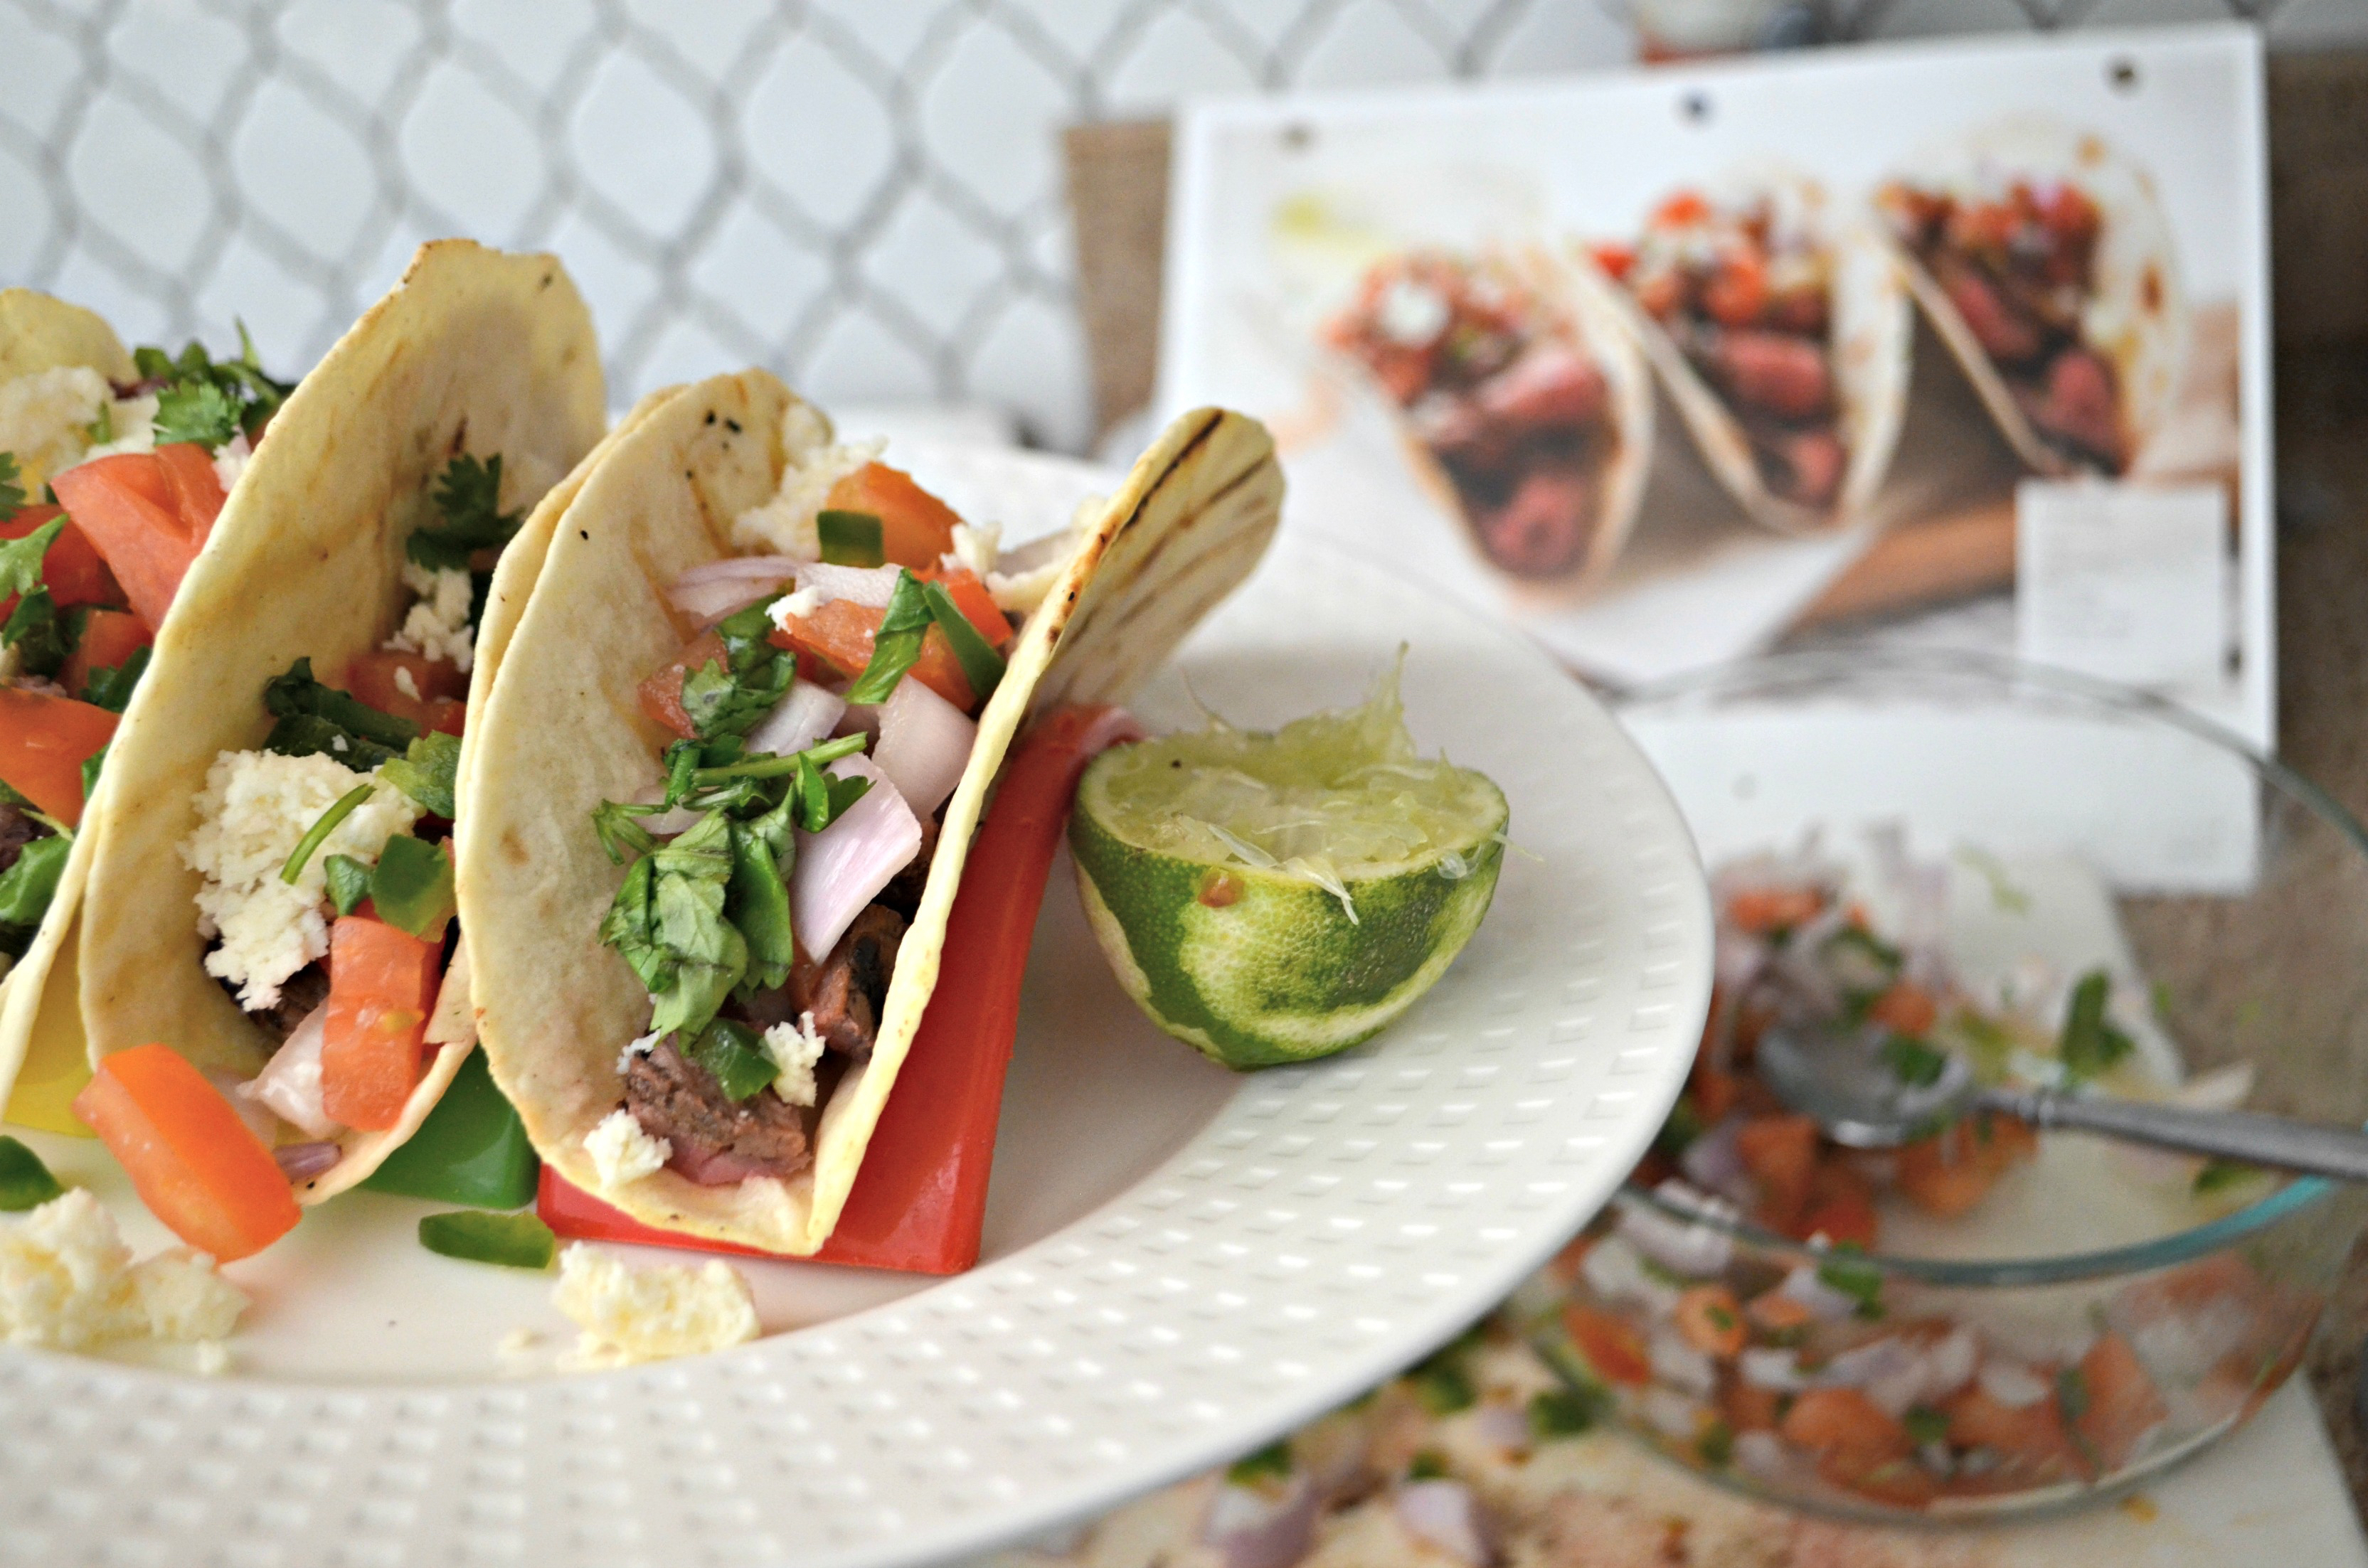 Home Chef Deal - street tacos and lime closeup